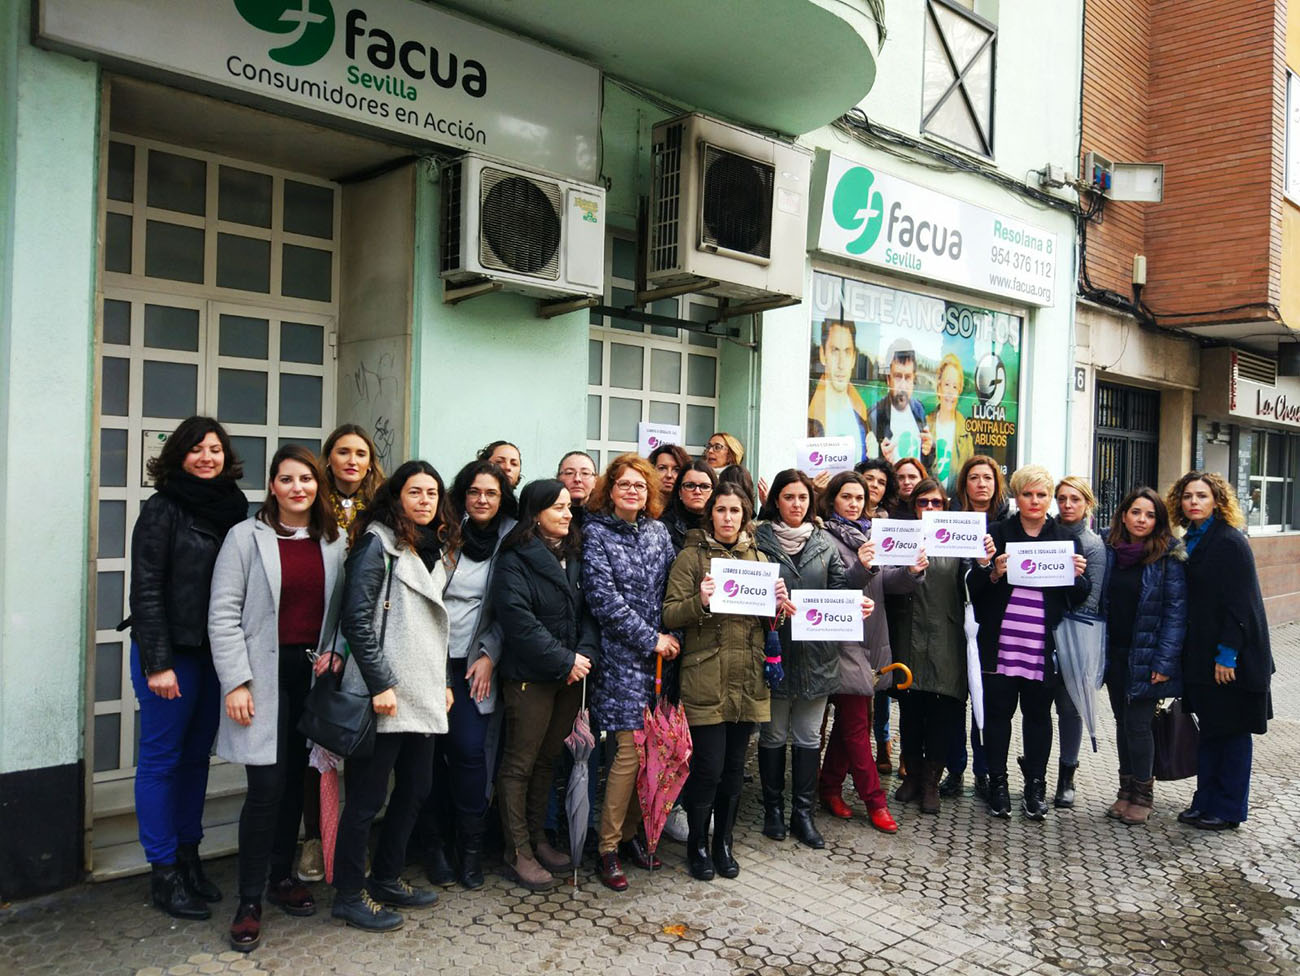 FACUA joins the feminist mobilisation and calls women to participate in the actions organised for the 8 of March